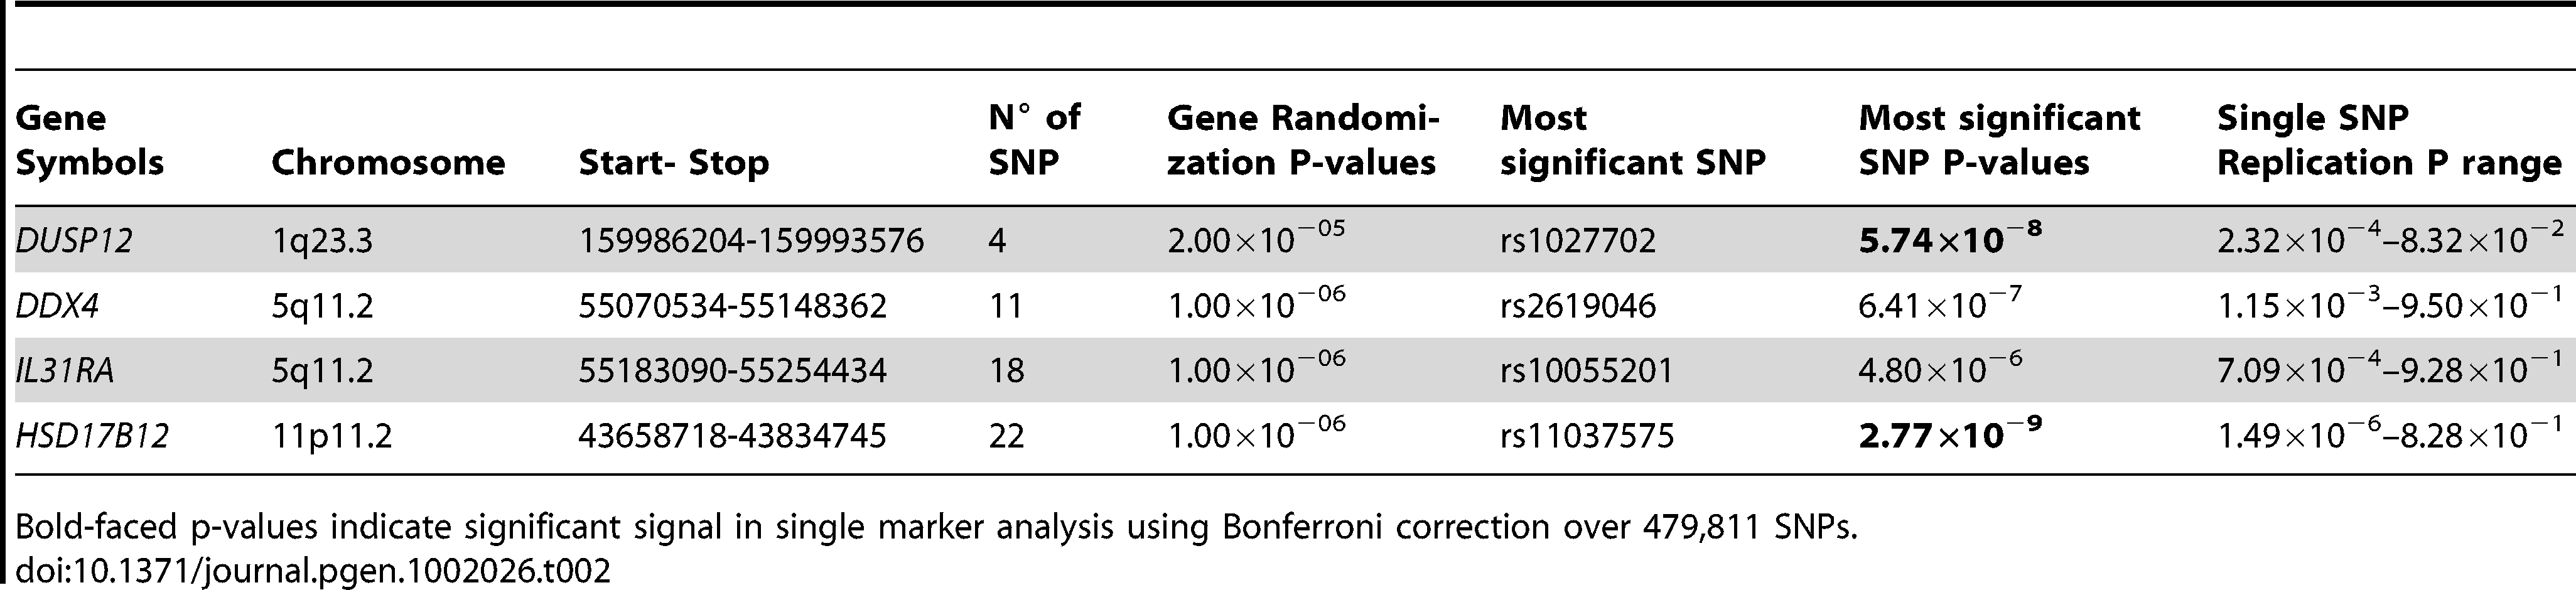 Additional summaries of gene-centric analysis results for low-risk neuroblastoma.